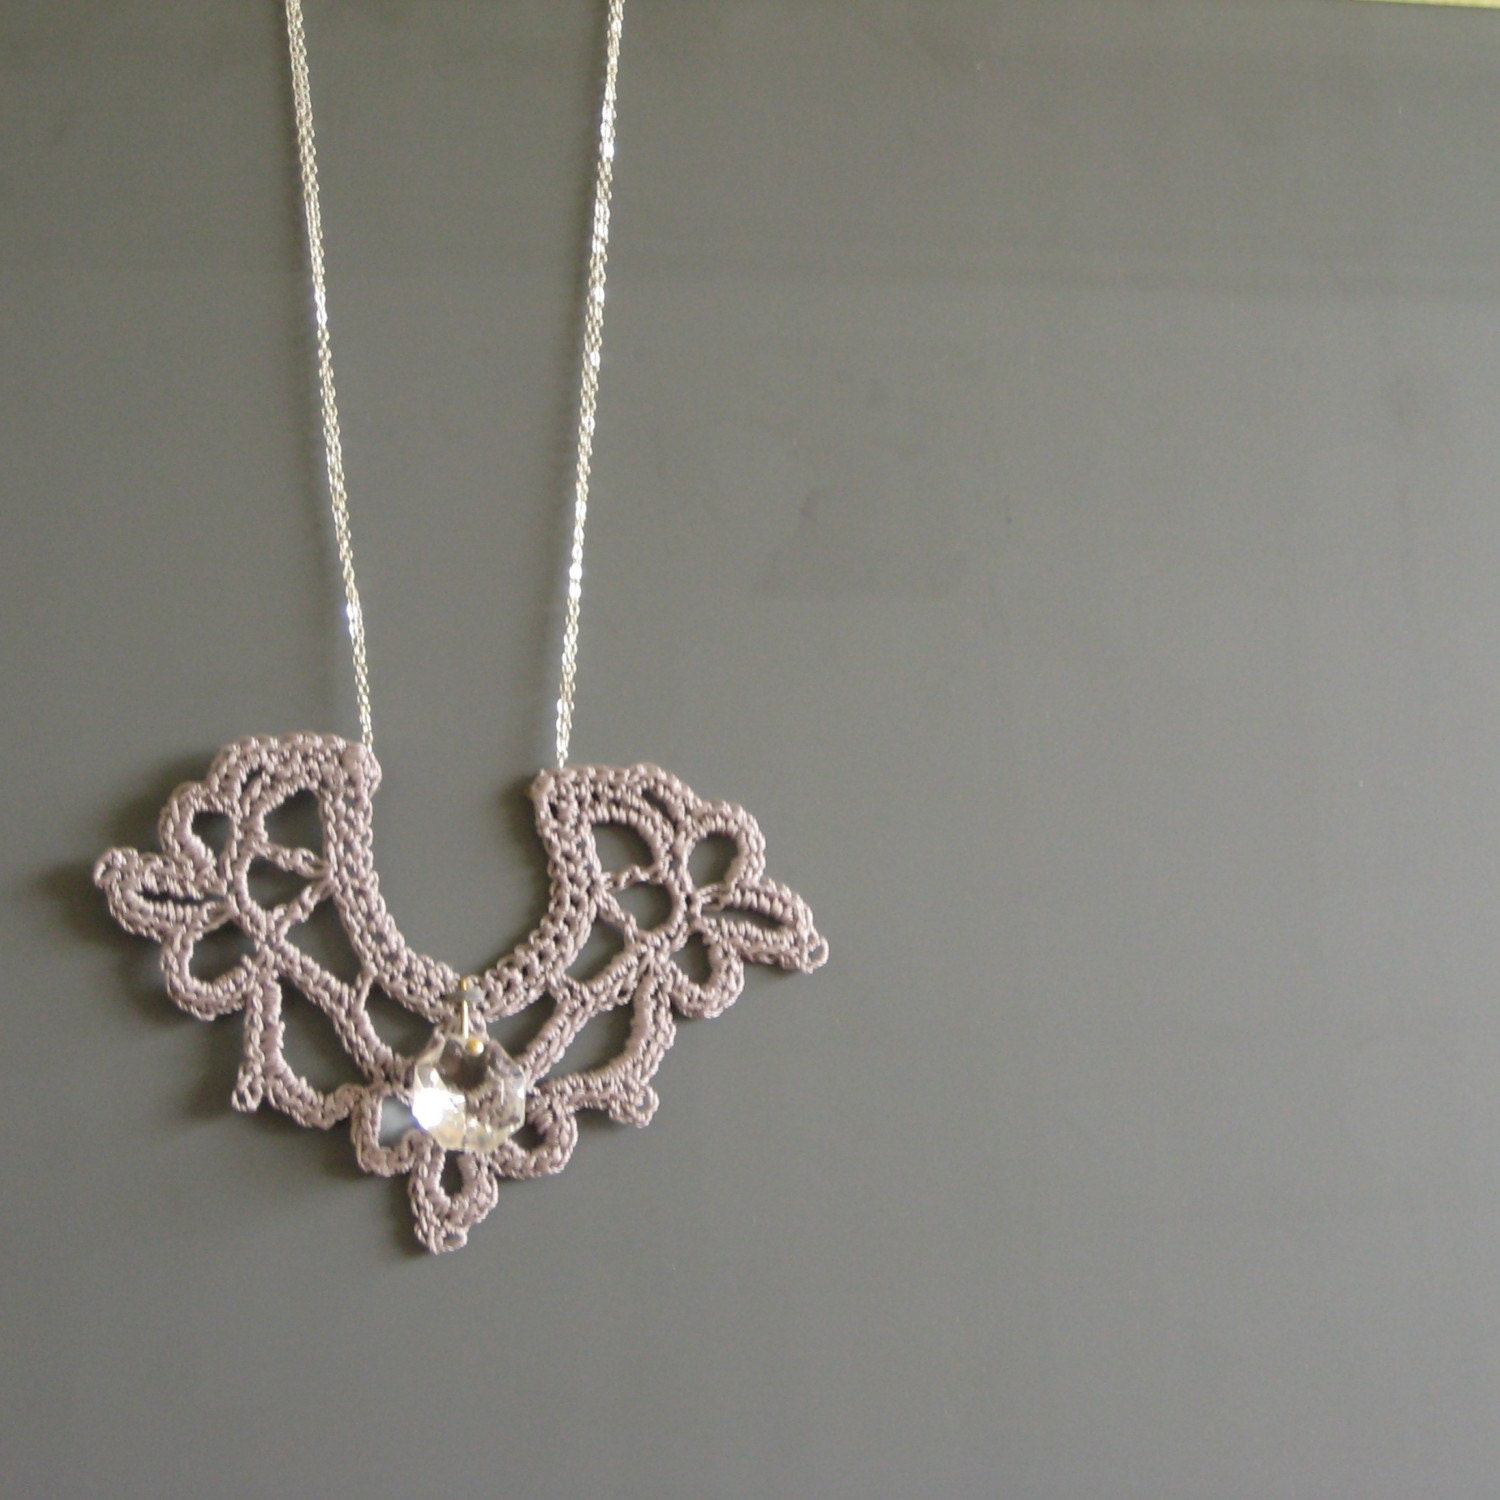 Mornington Necklace (Sterling silver chain)